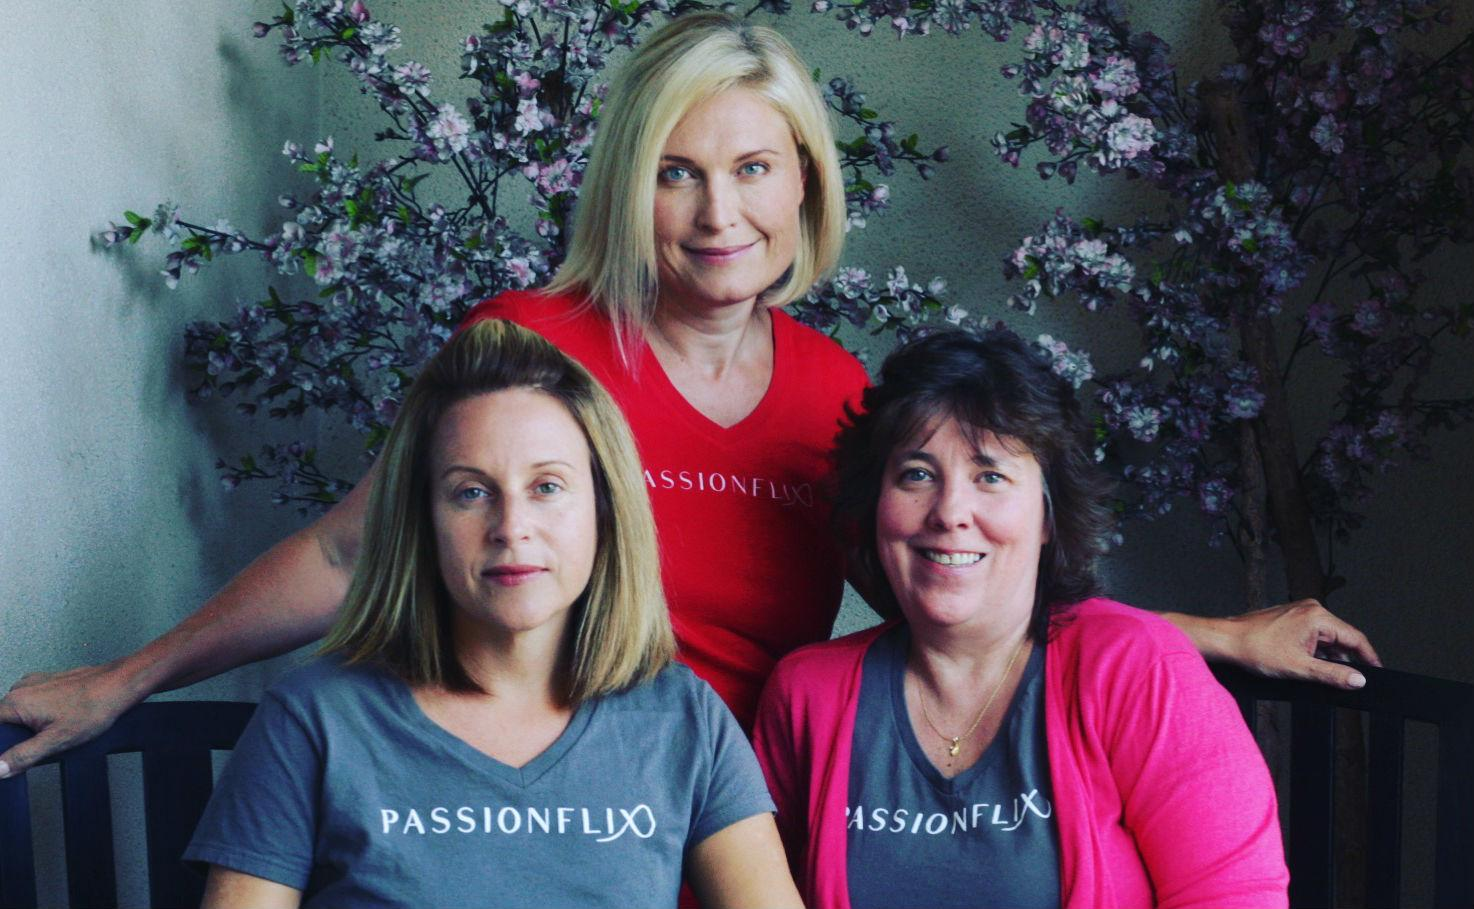 passionflix founders